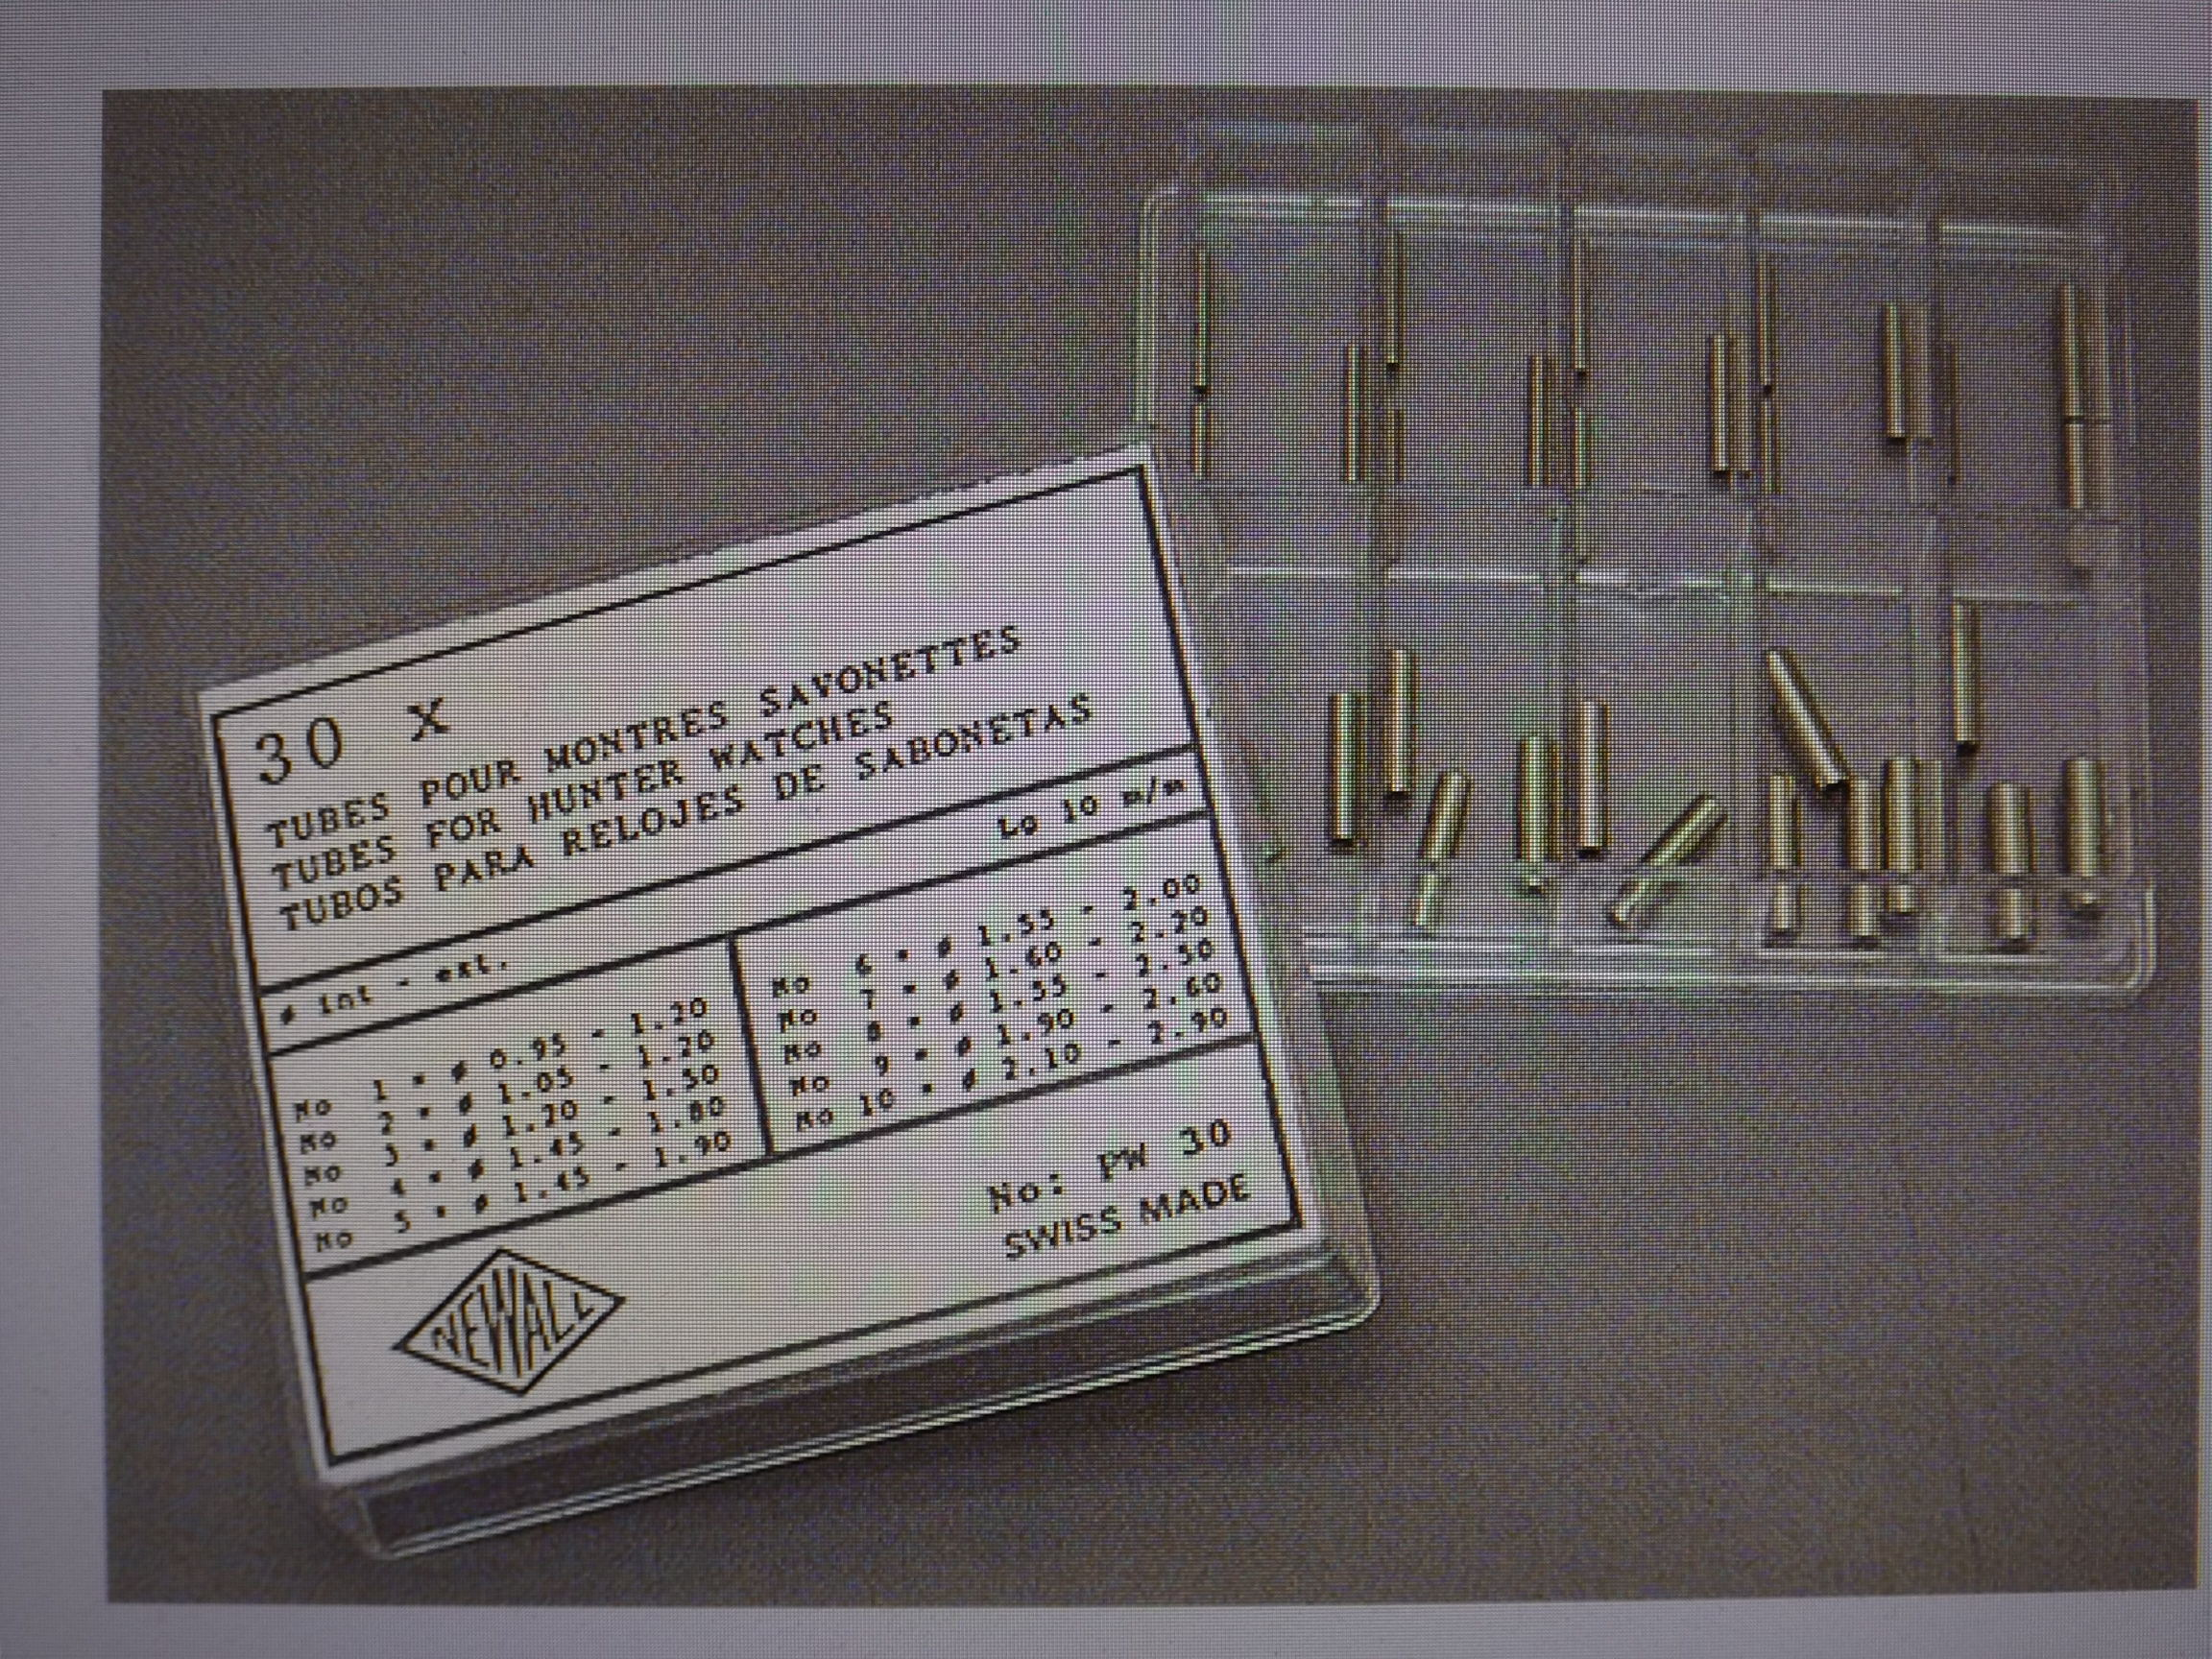 PW30 Tubes for Hunter Case Watches Assortment- 30 pieces, Newall